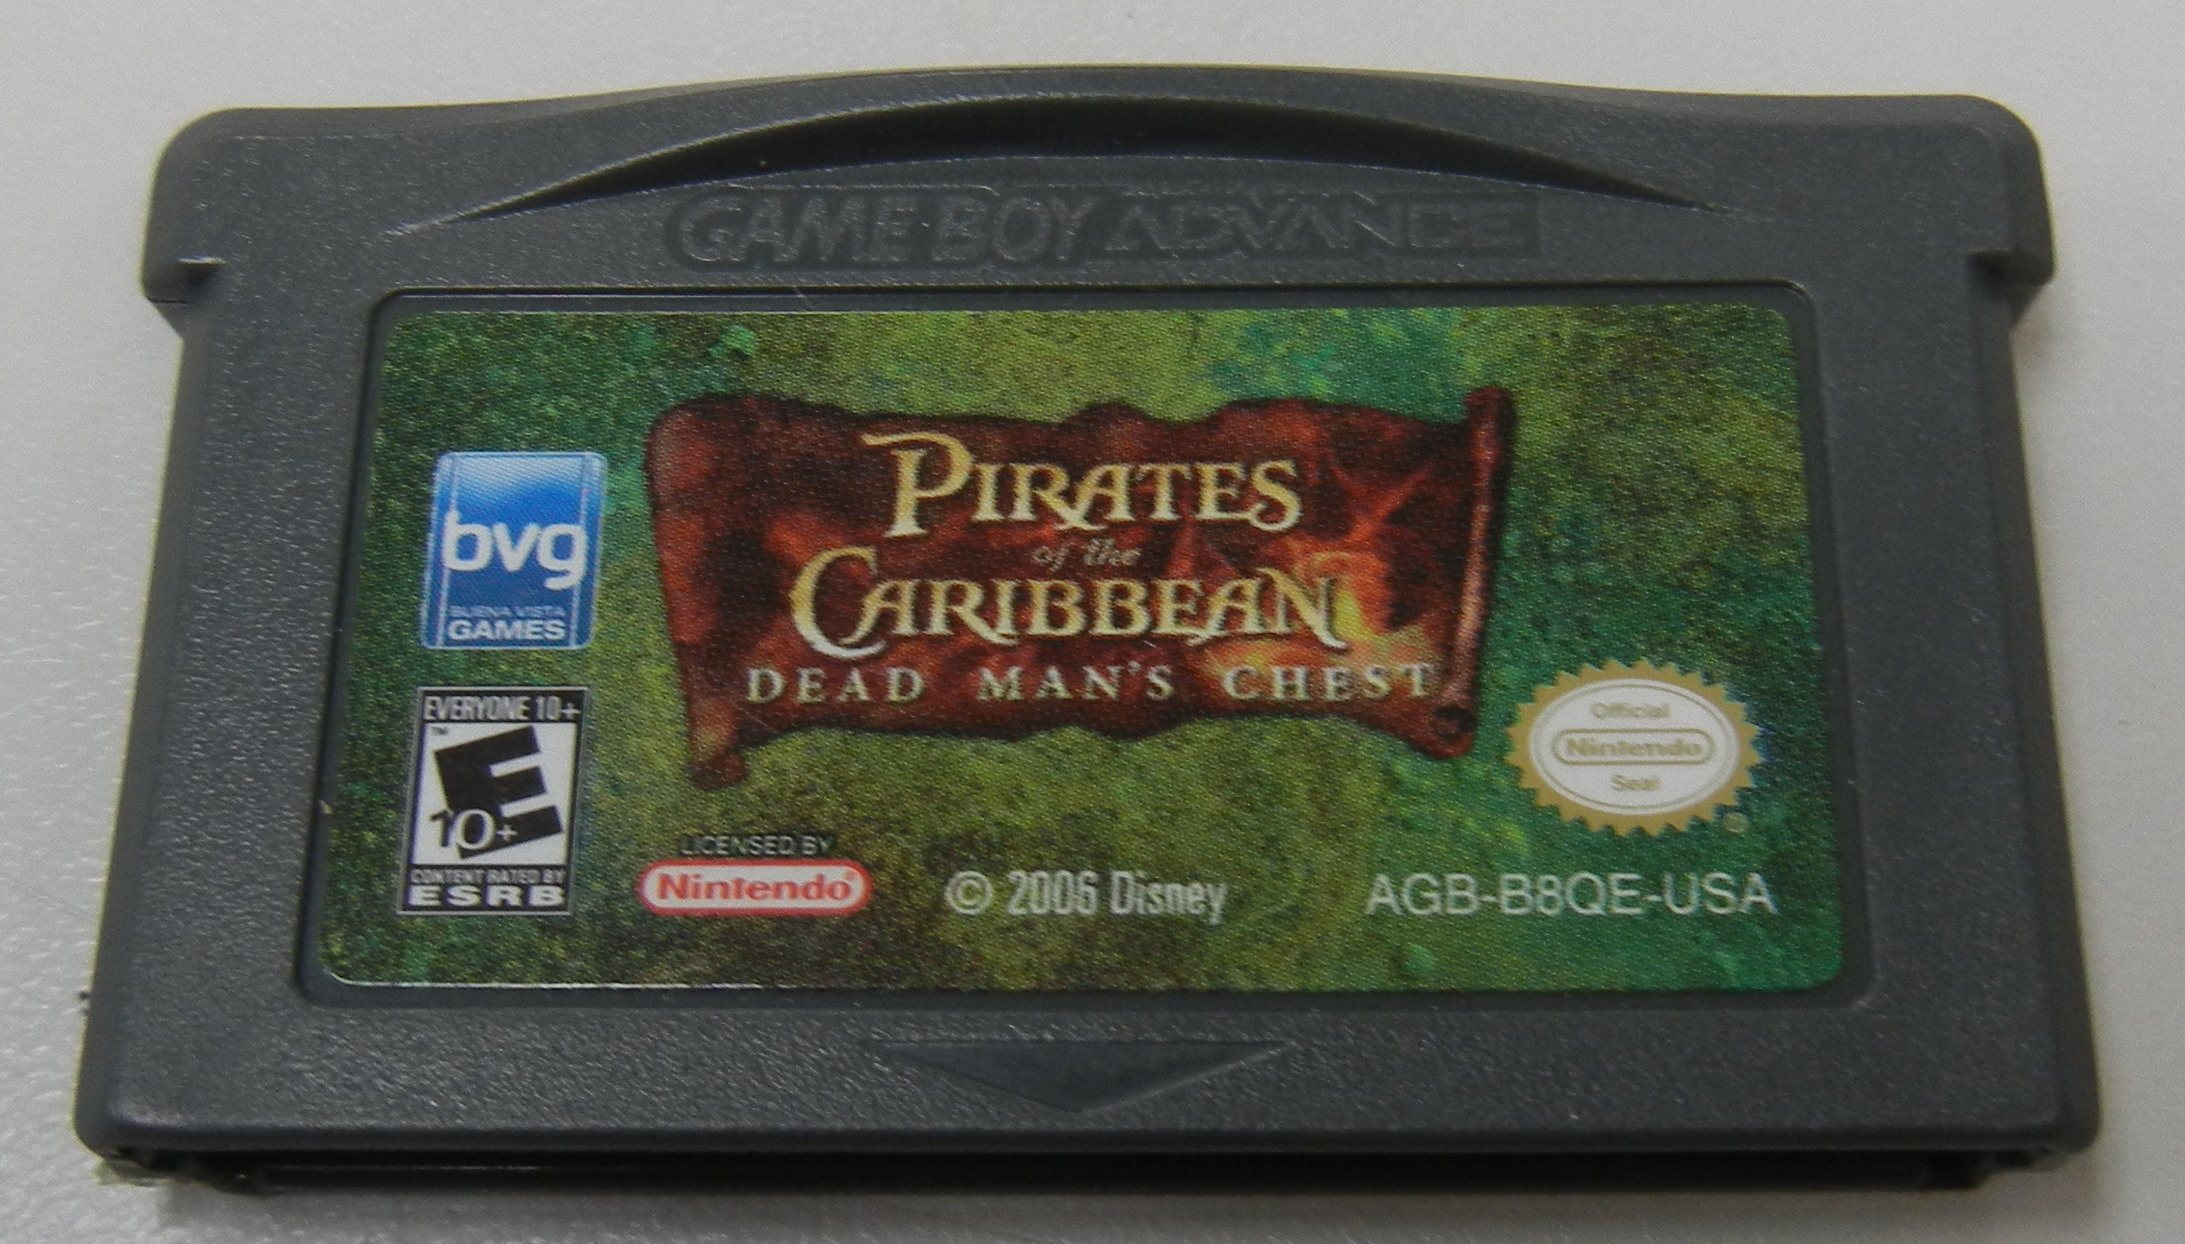 PIRATES OF THE CARIBBEAN: DEAD MAN'S CHEST  - GAMEBOY ADVANCE GAME